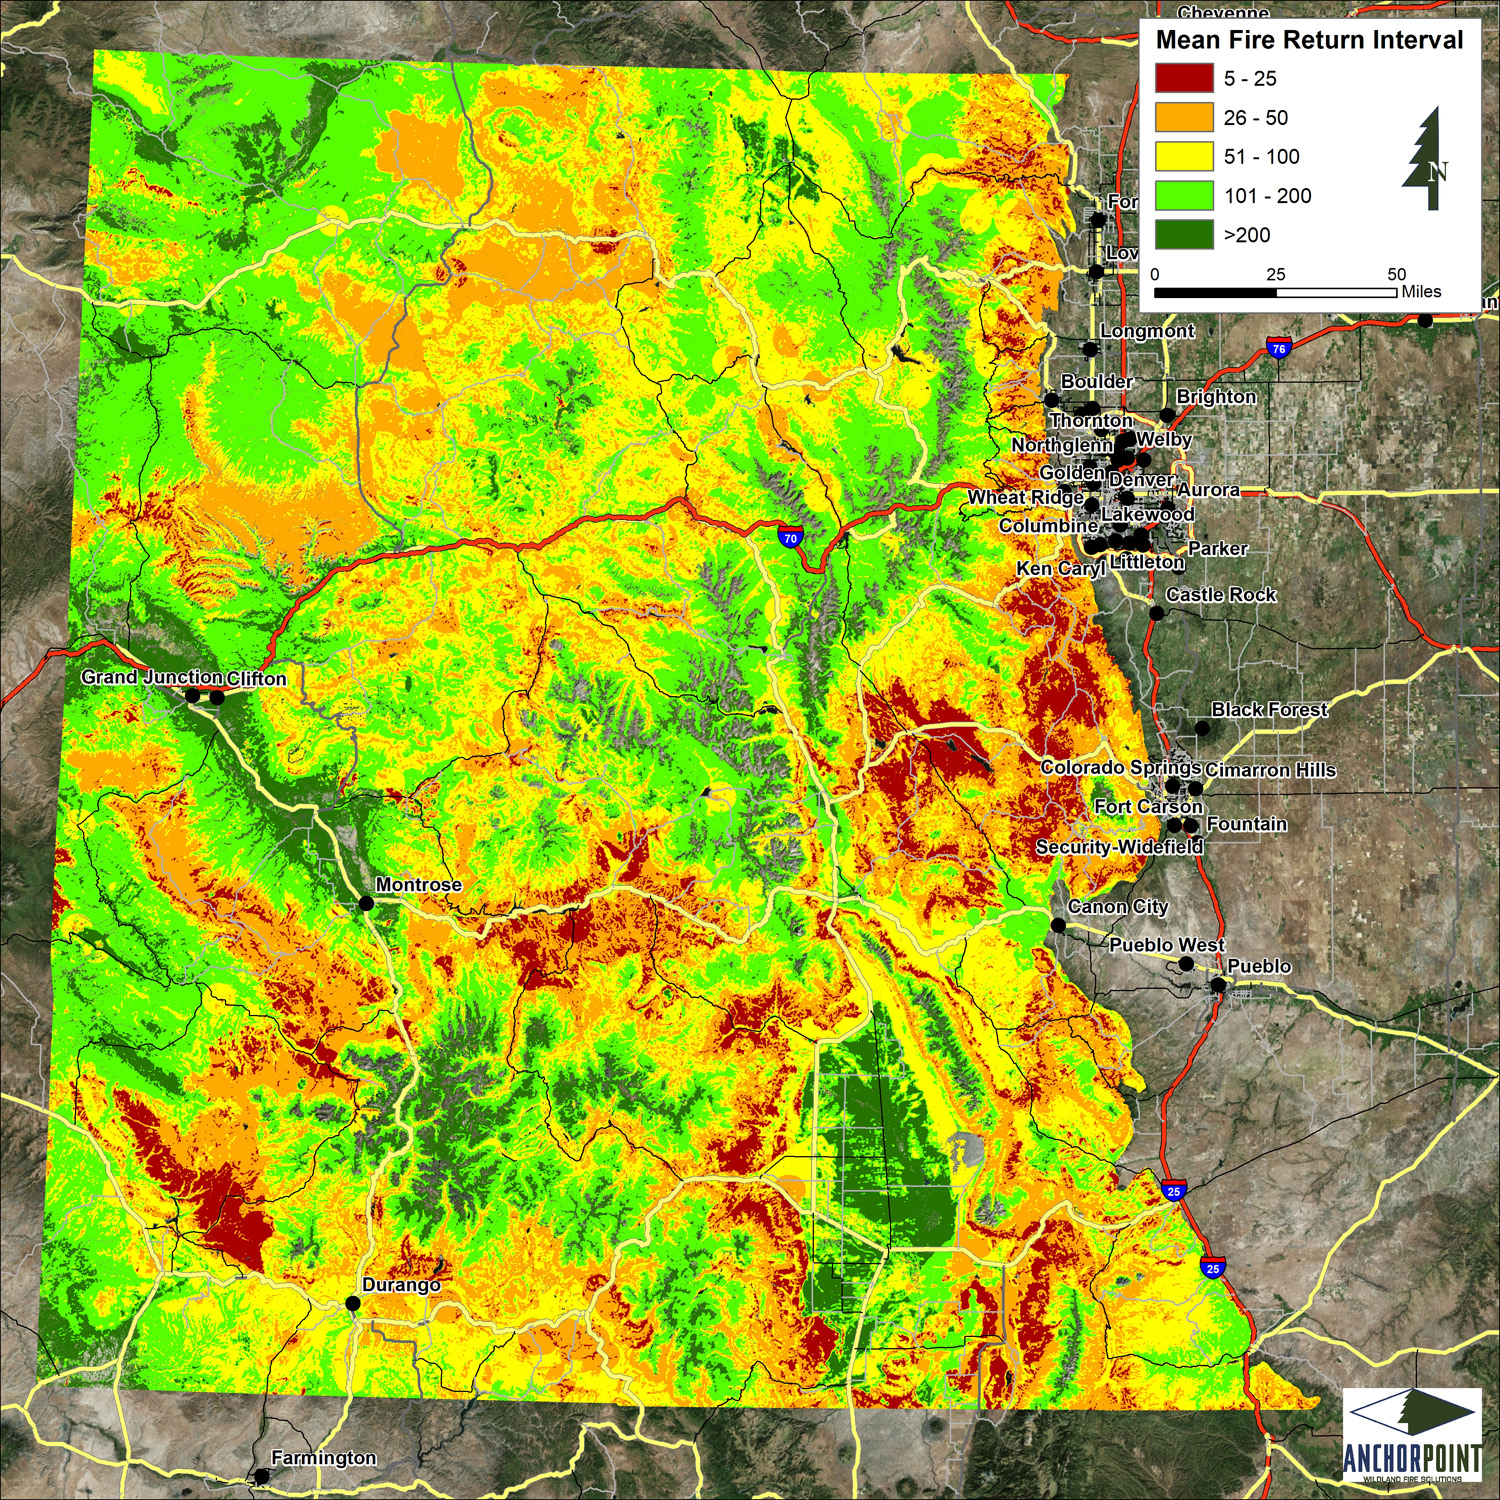 Fires Colorado Map.Modified Fire Return Interval Map Of Colorado Coalition For The